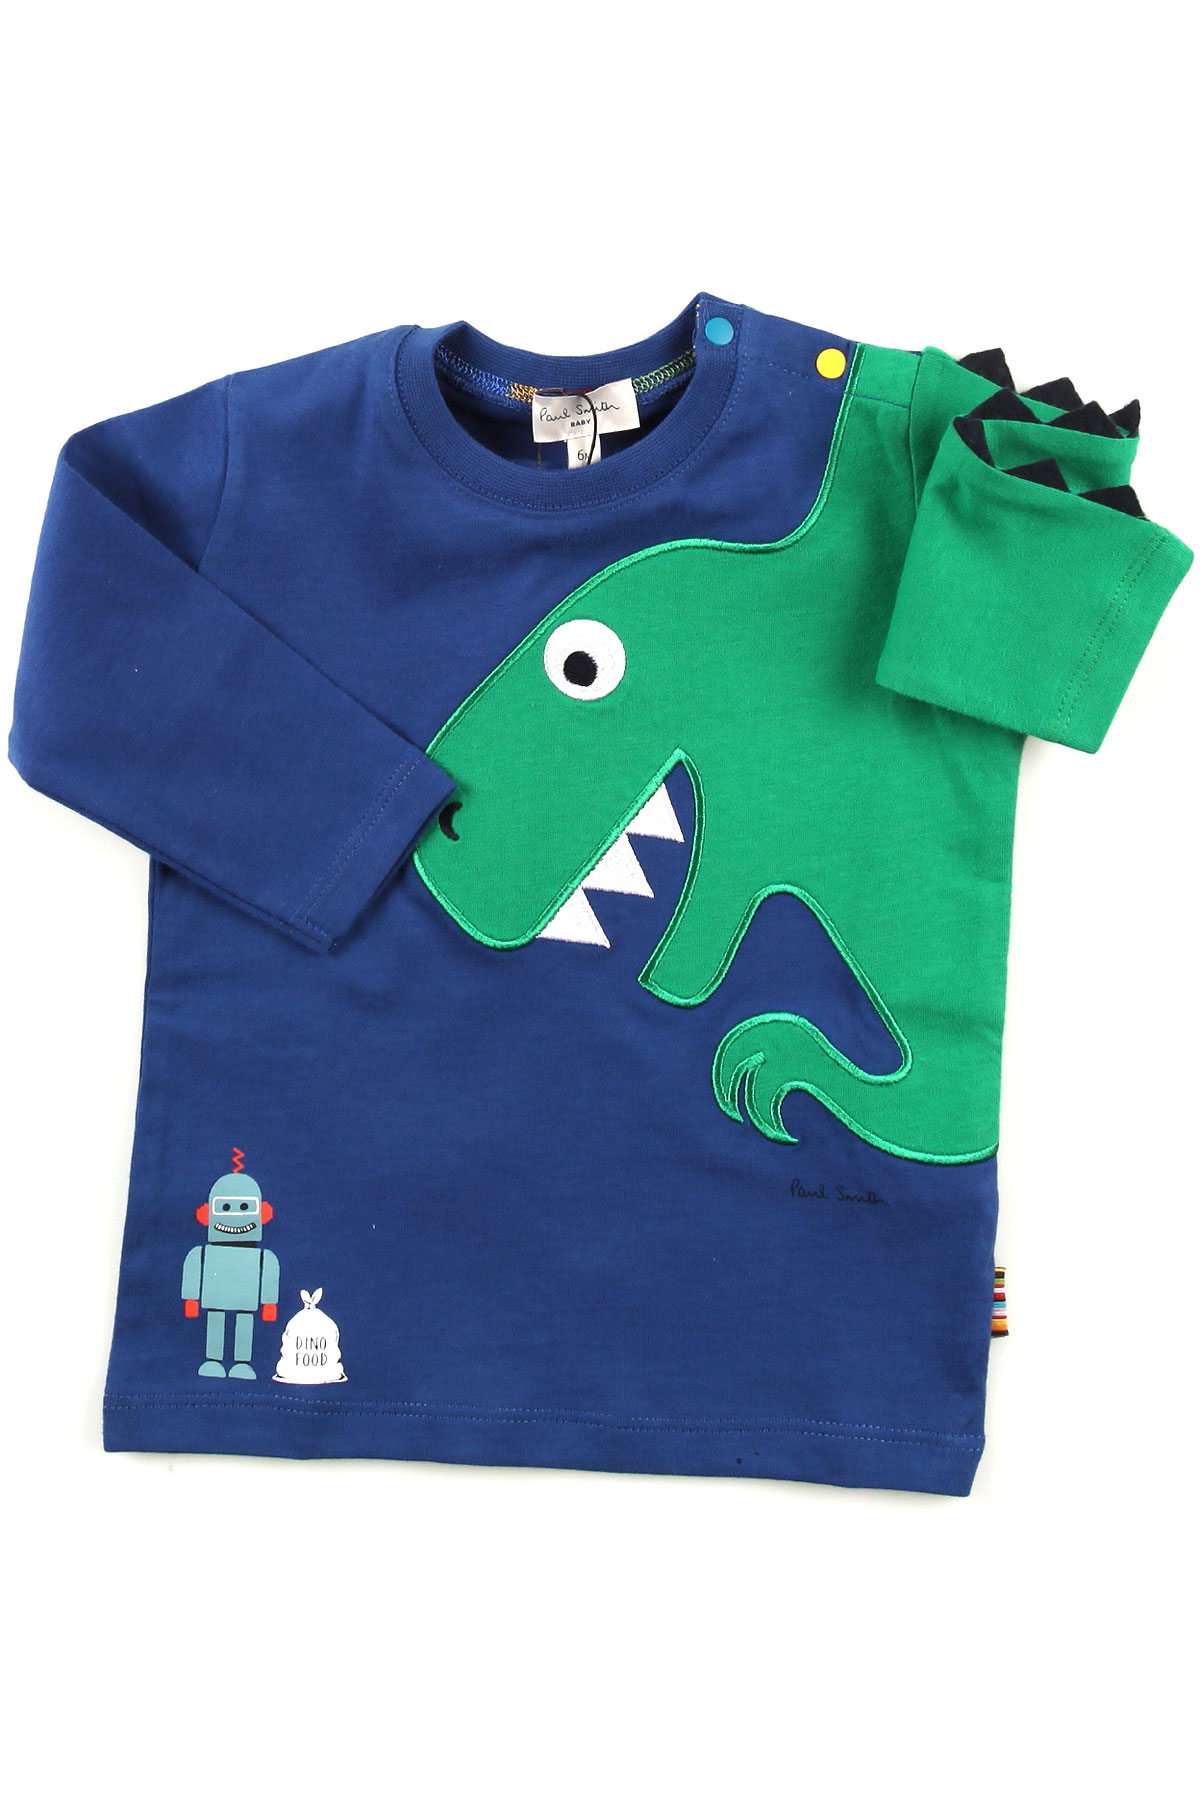 Image of Paul Smith Baby T-Shirt for Boys, Blue, Cotton, 2017, 12M 18M 2Y 3Y 6M 9M